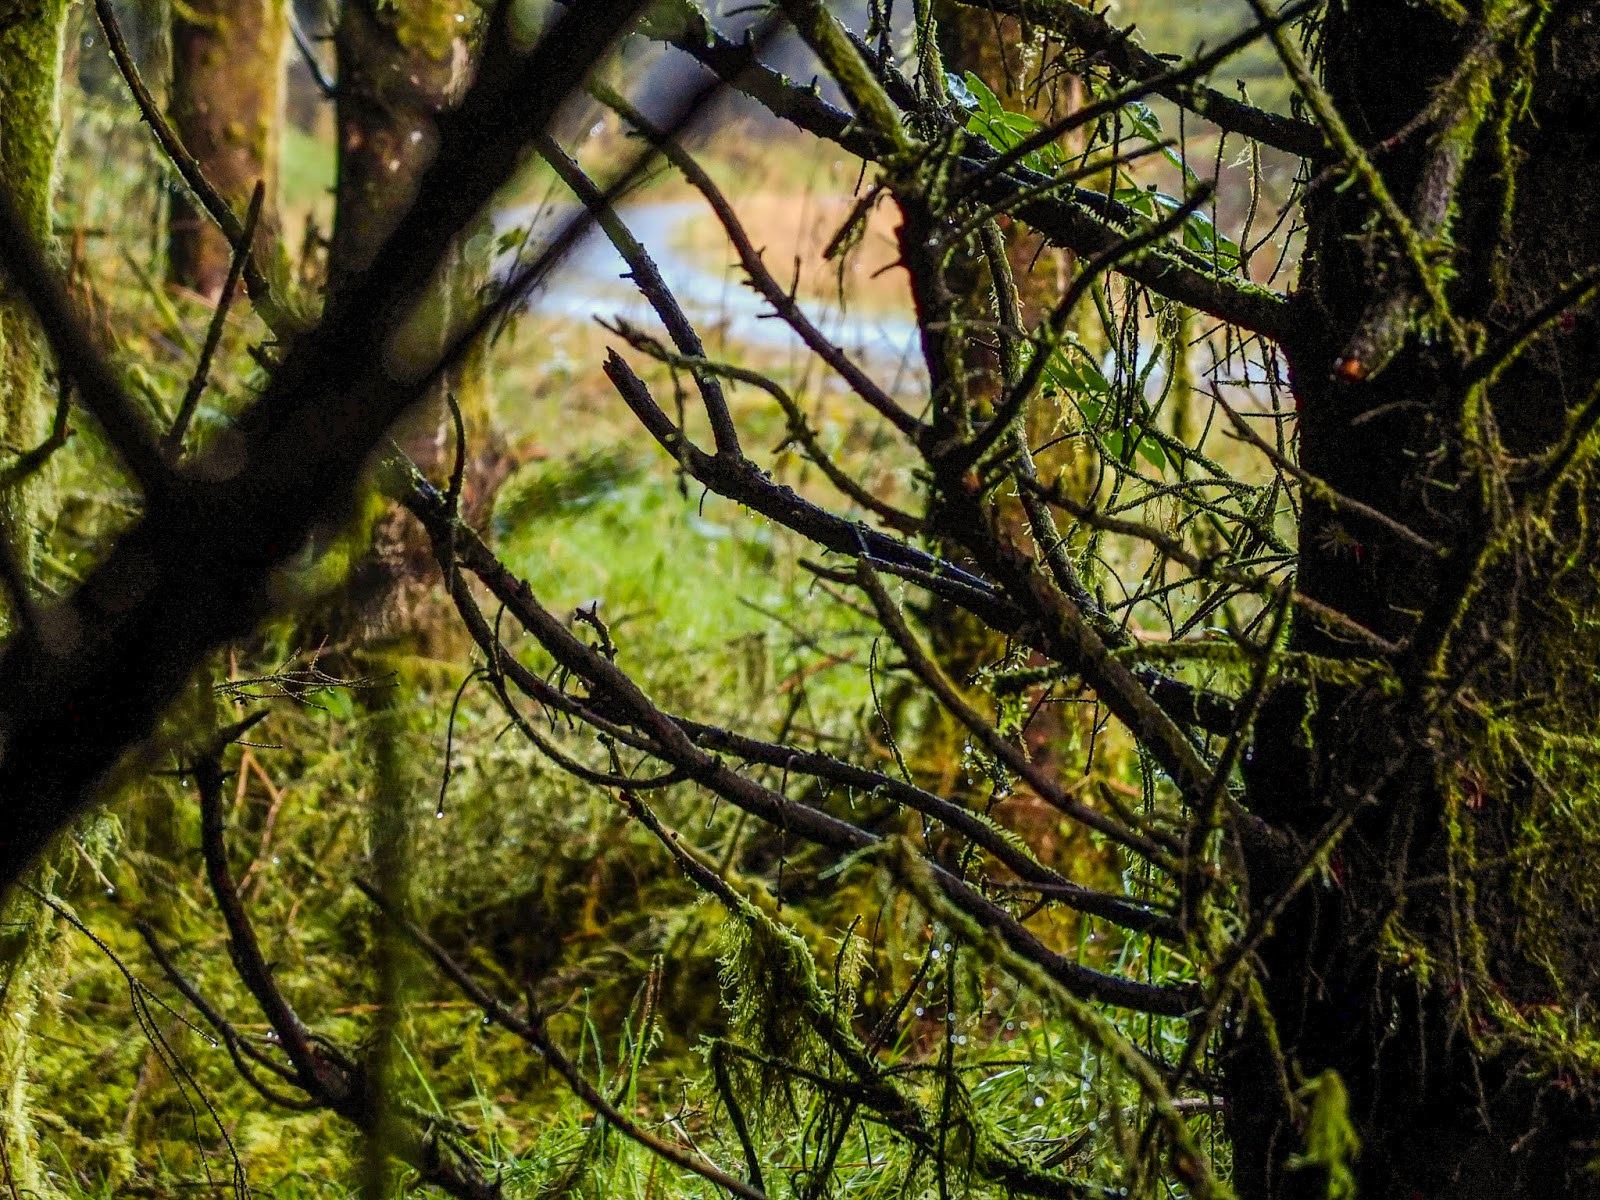 Looking of of a forest from behind mossy tree branches.